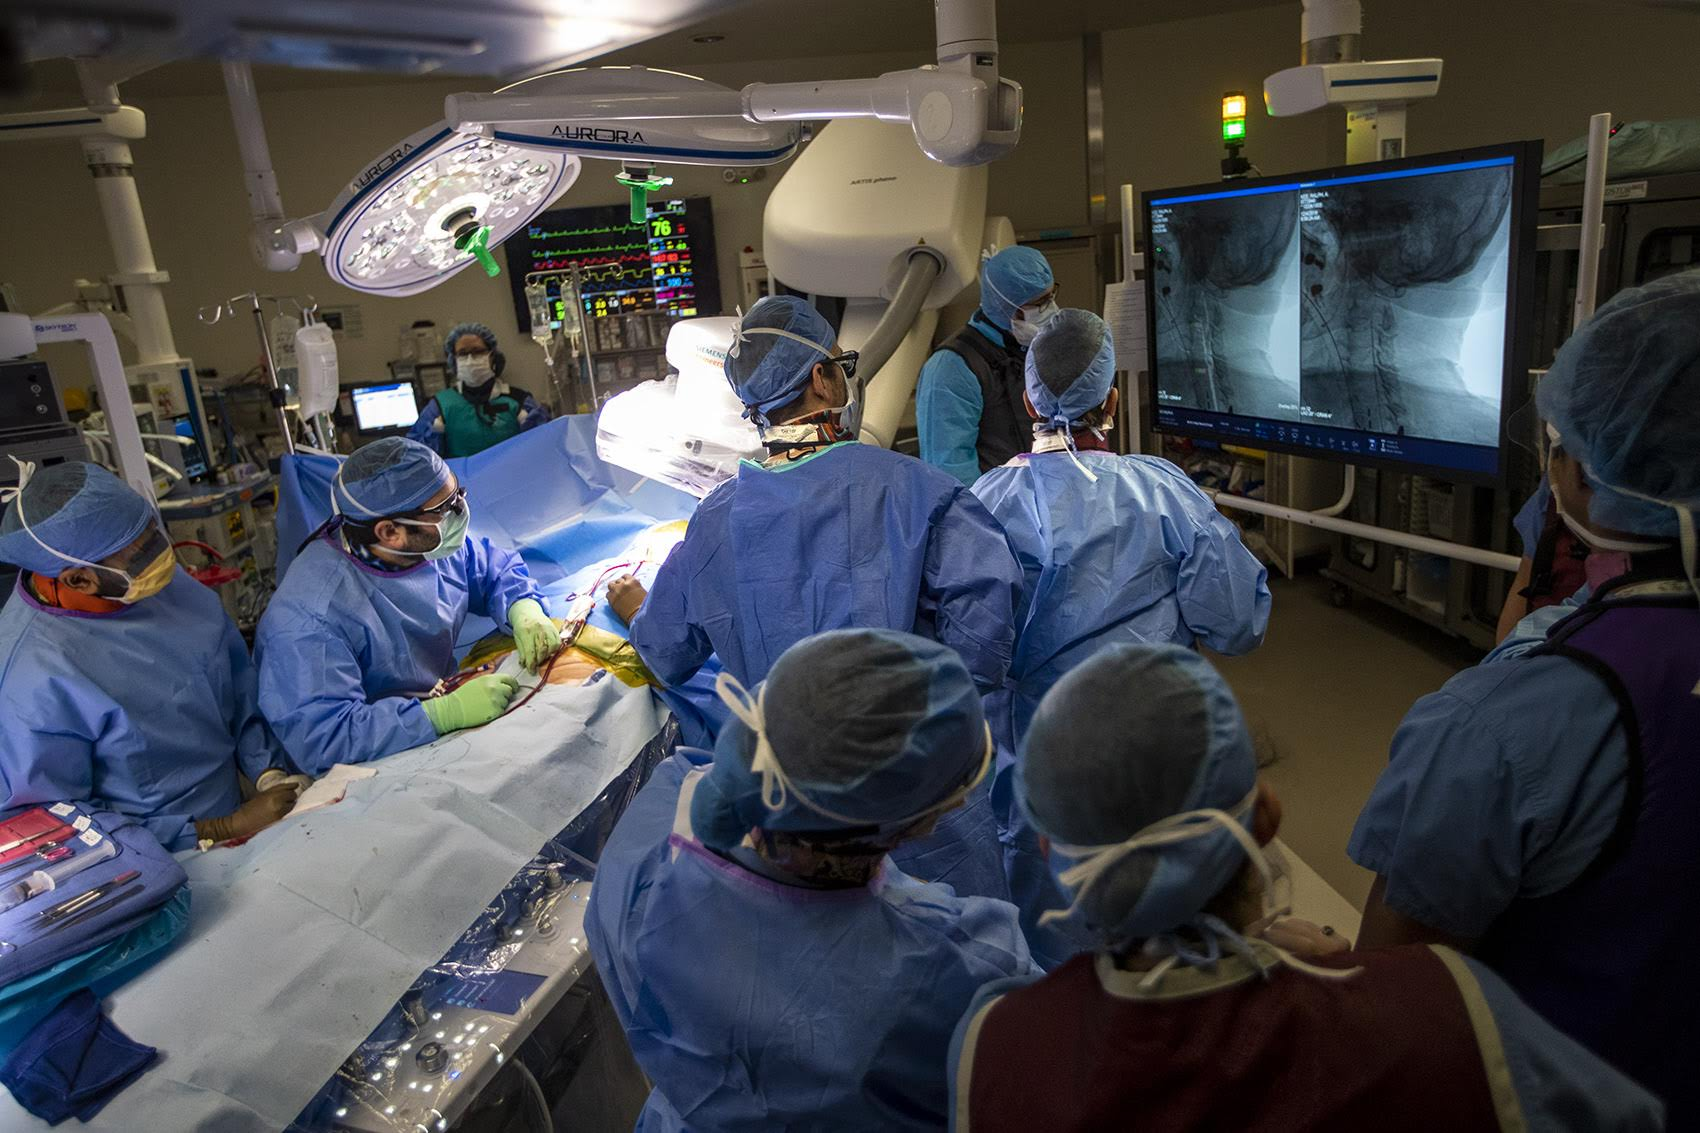 Vascular surgeon Doug Jones and his team perform a surgery to unblock the patient's carotid artery at Boston Medical Center. (Jesse Costa/WBUR)